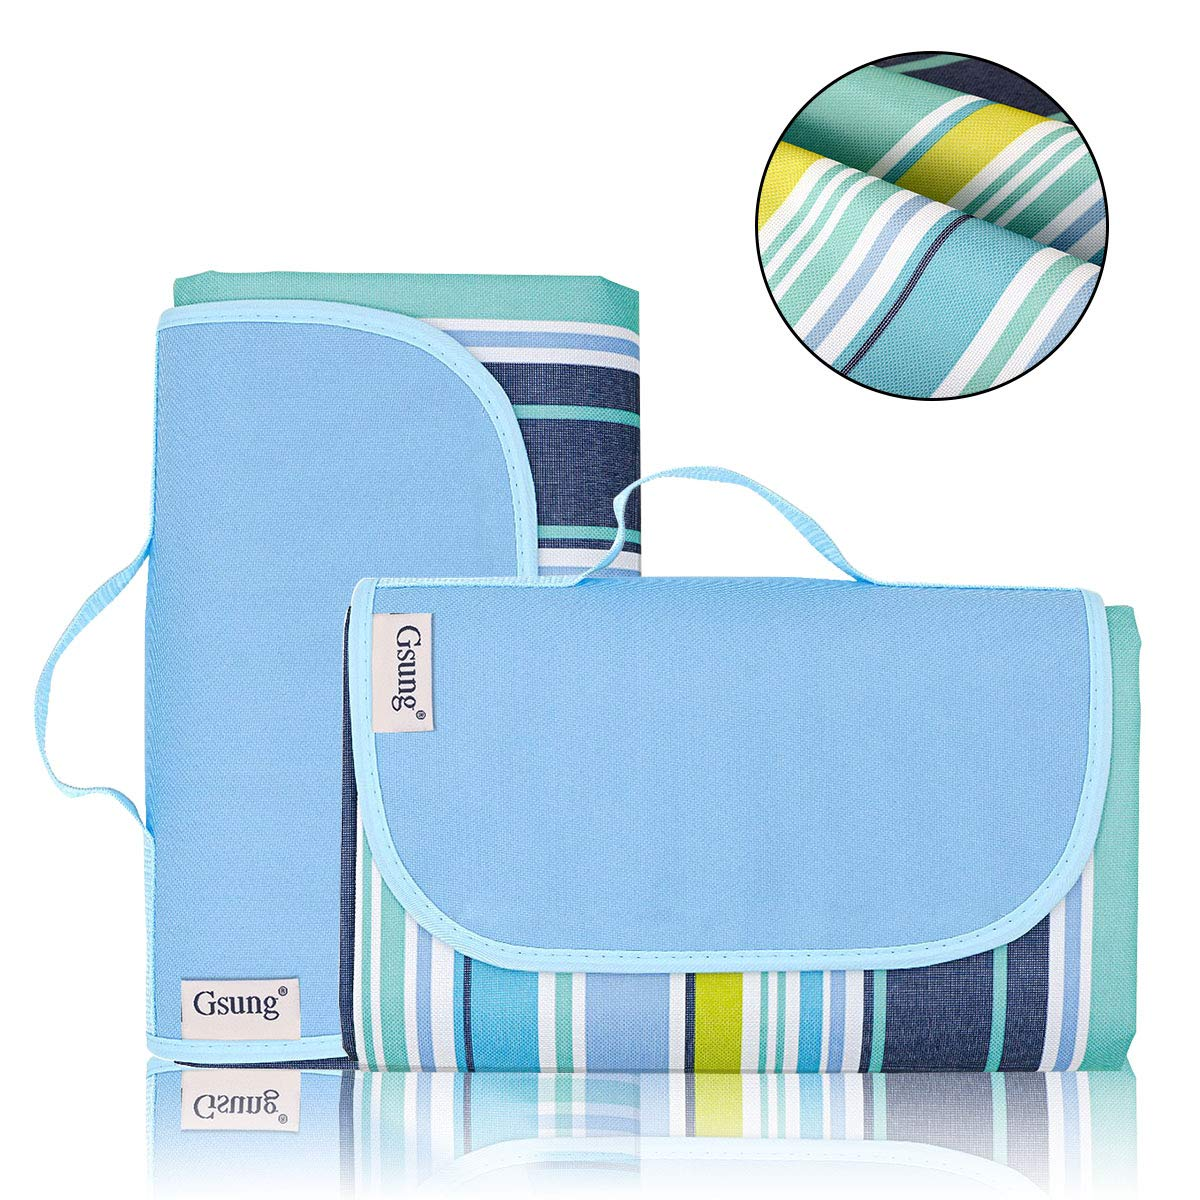 Gsung Outdoor Waterproof Picnic Blanket Extra Large Picnic Blanket Beach Mat with Tote for Hiking,Camping,Traveling Oversized Seat for Family 79''x59''